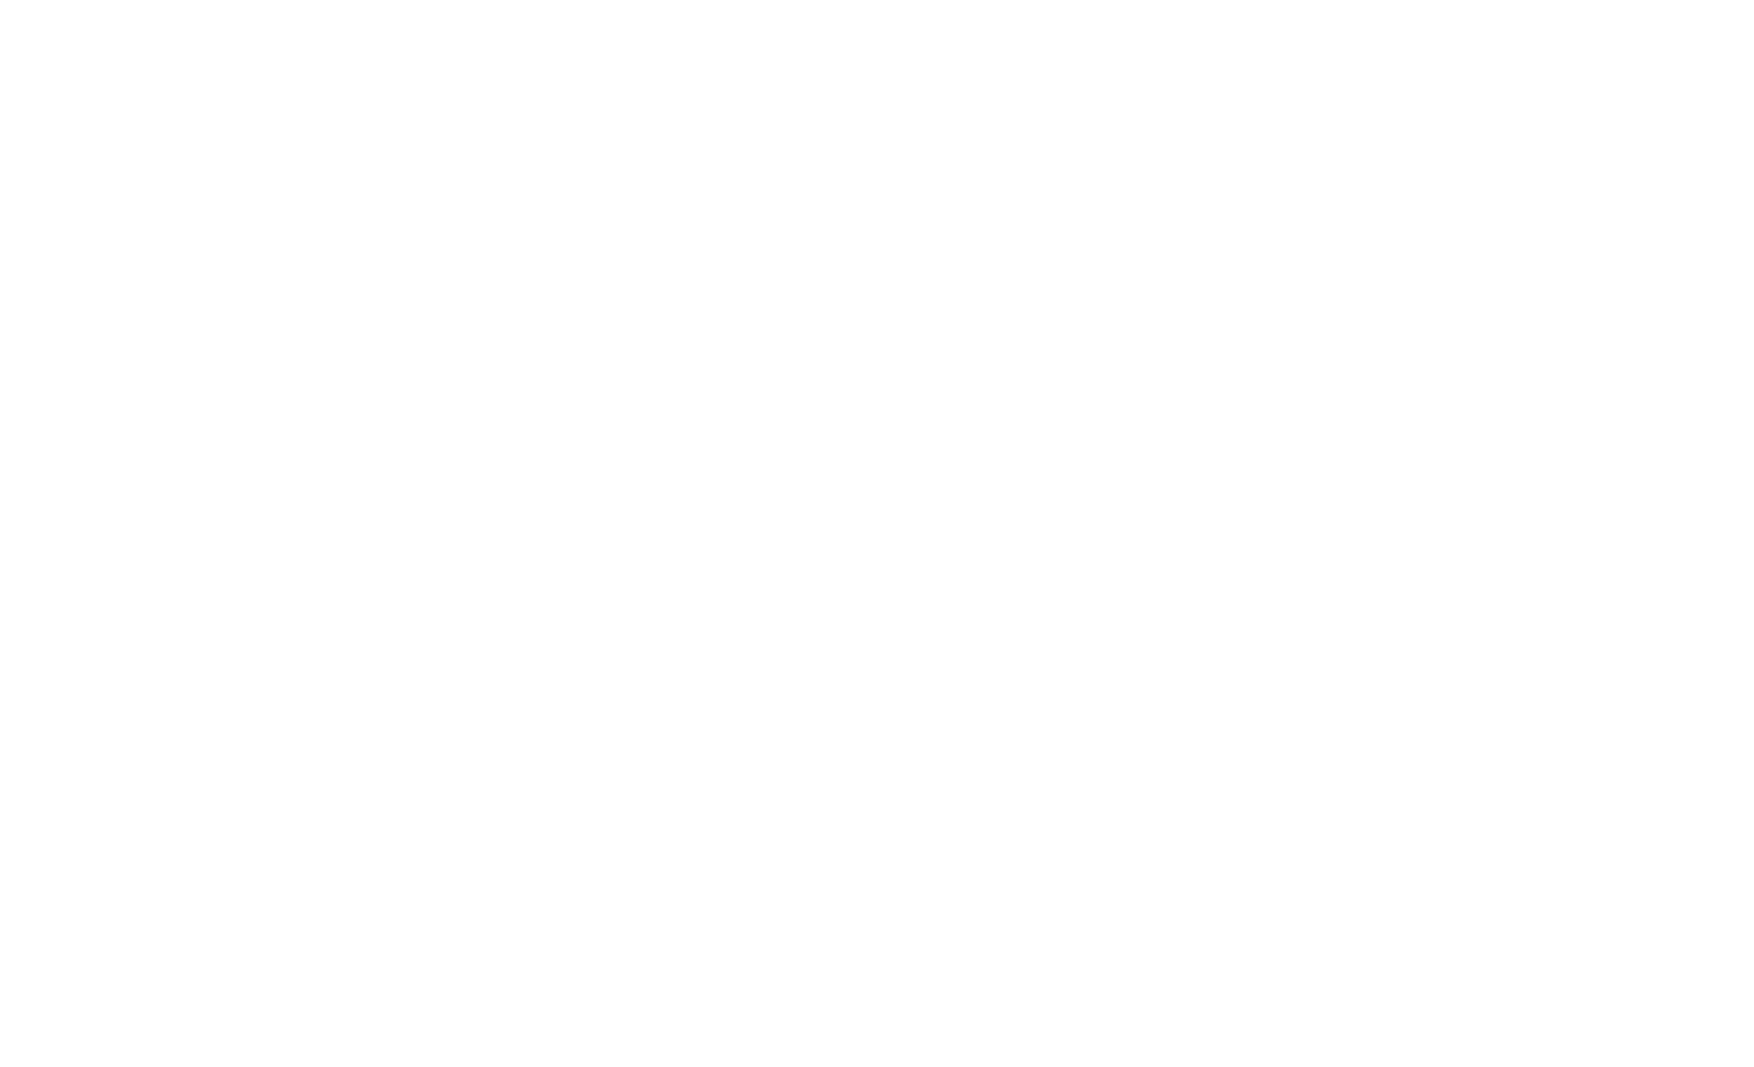 United Families